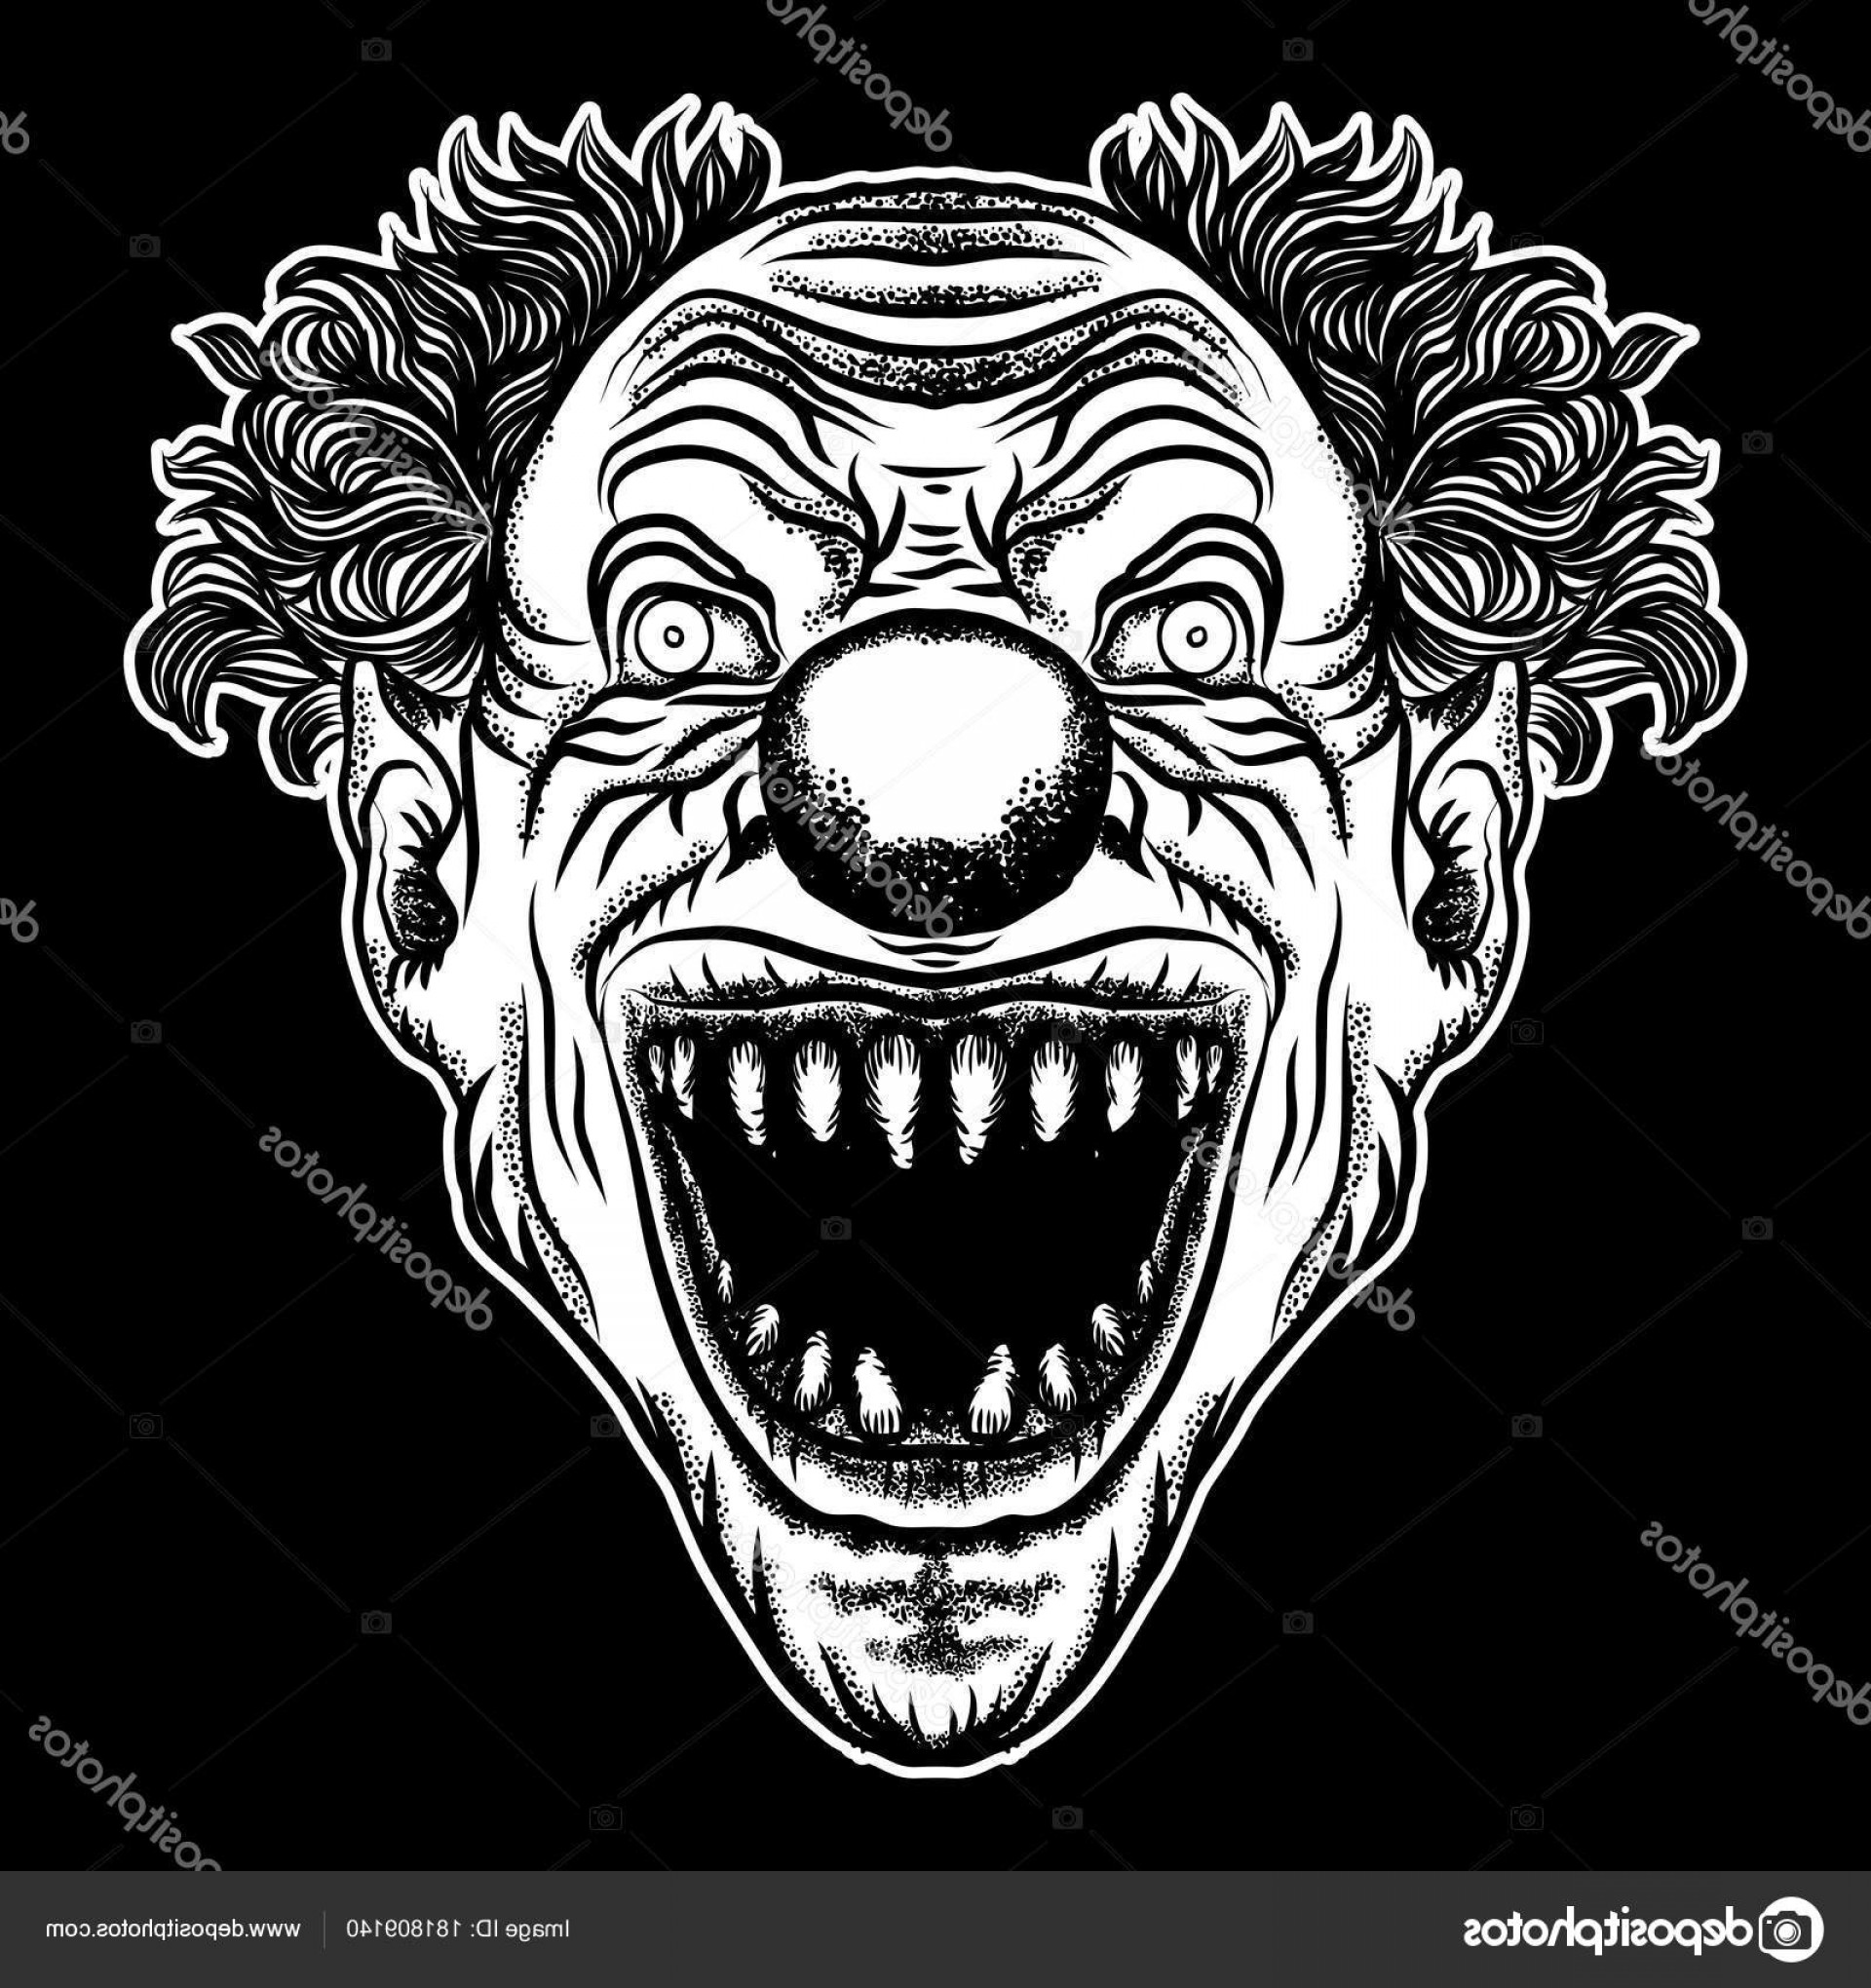 Evil Clown Vector Art: Stock Illustration Scary Clown Head Concept Of